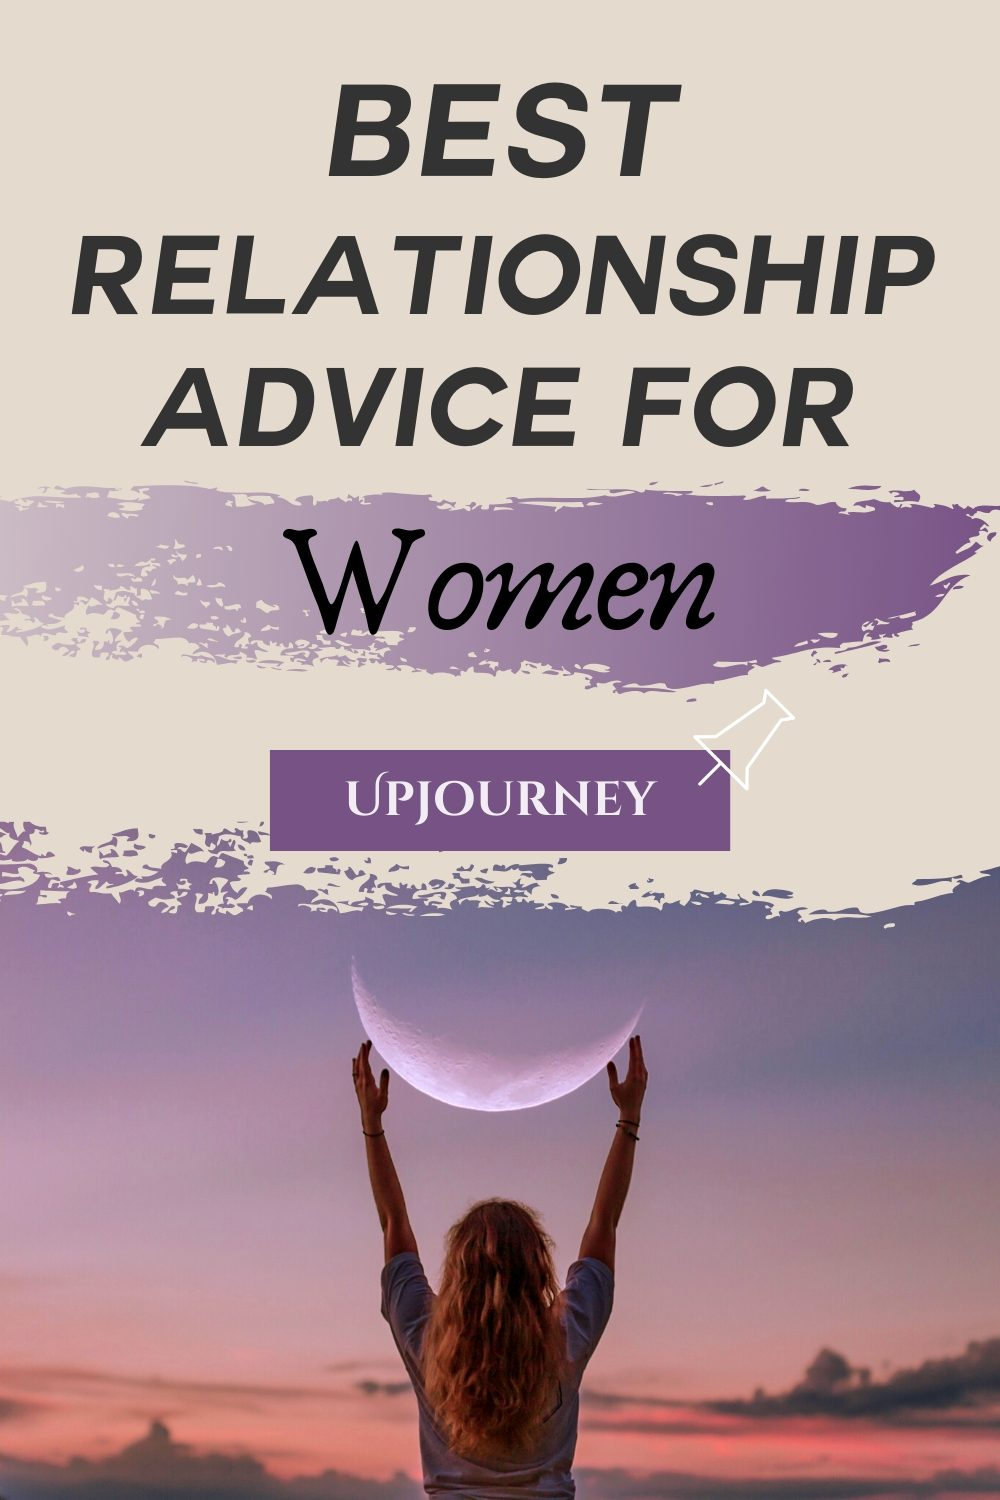 Best Relationship Advice for Women